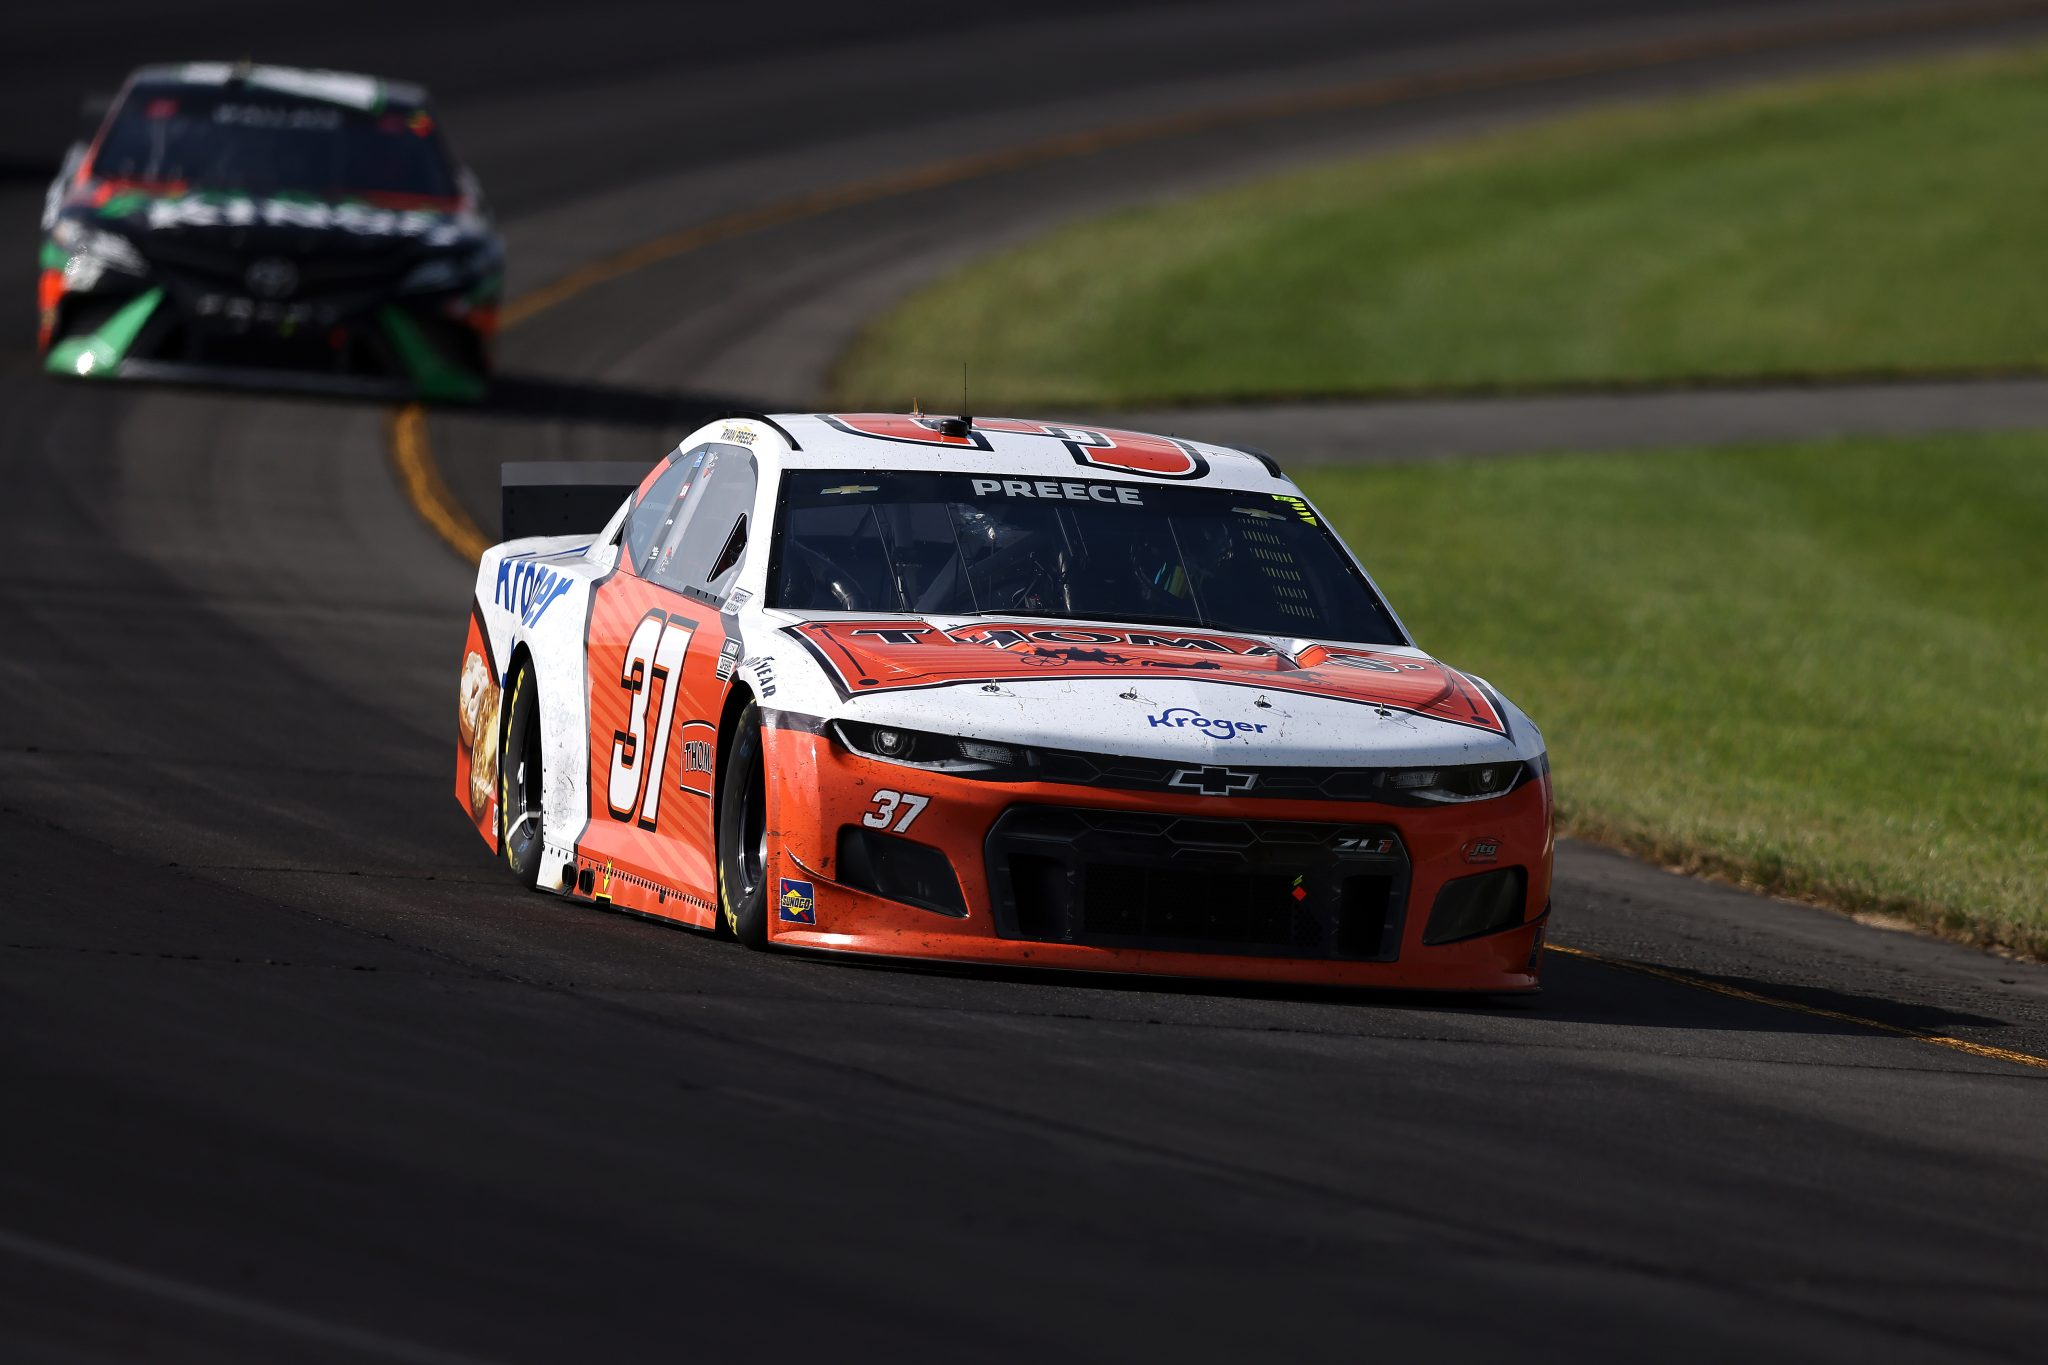 LONG POND, PENNSYLVANIA - JUNE 27: Ryan Preece, driver of the #37 Thomas'/Kroger Chevrolet, drives during the NASCAR Cup Series Explore the Pocono Mountains 350 at Pocono Raceway on June 27, 2021 in Long Pond, Pennsylvania. (Photo by James Gilbert/Getty Images) | Getty Images